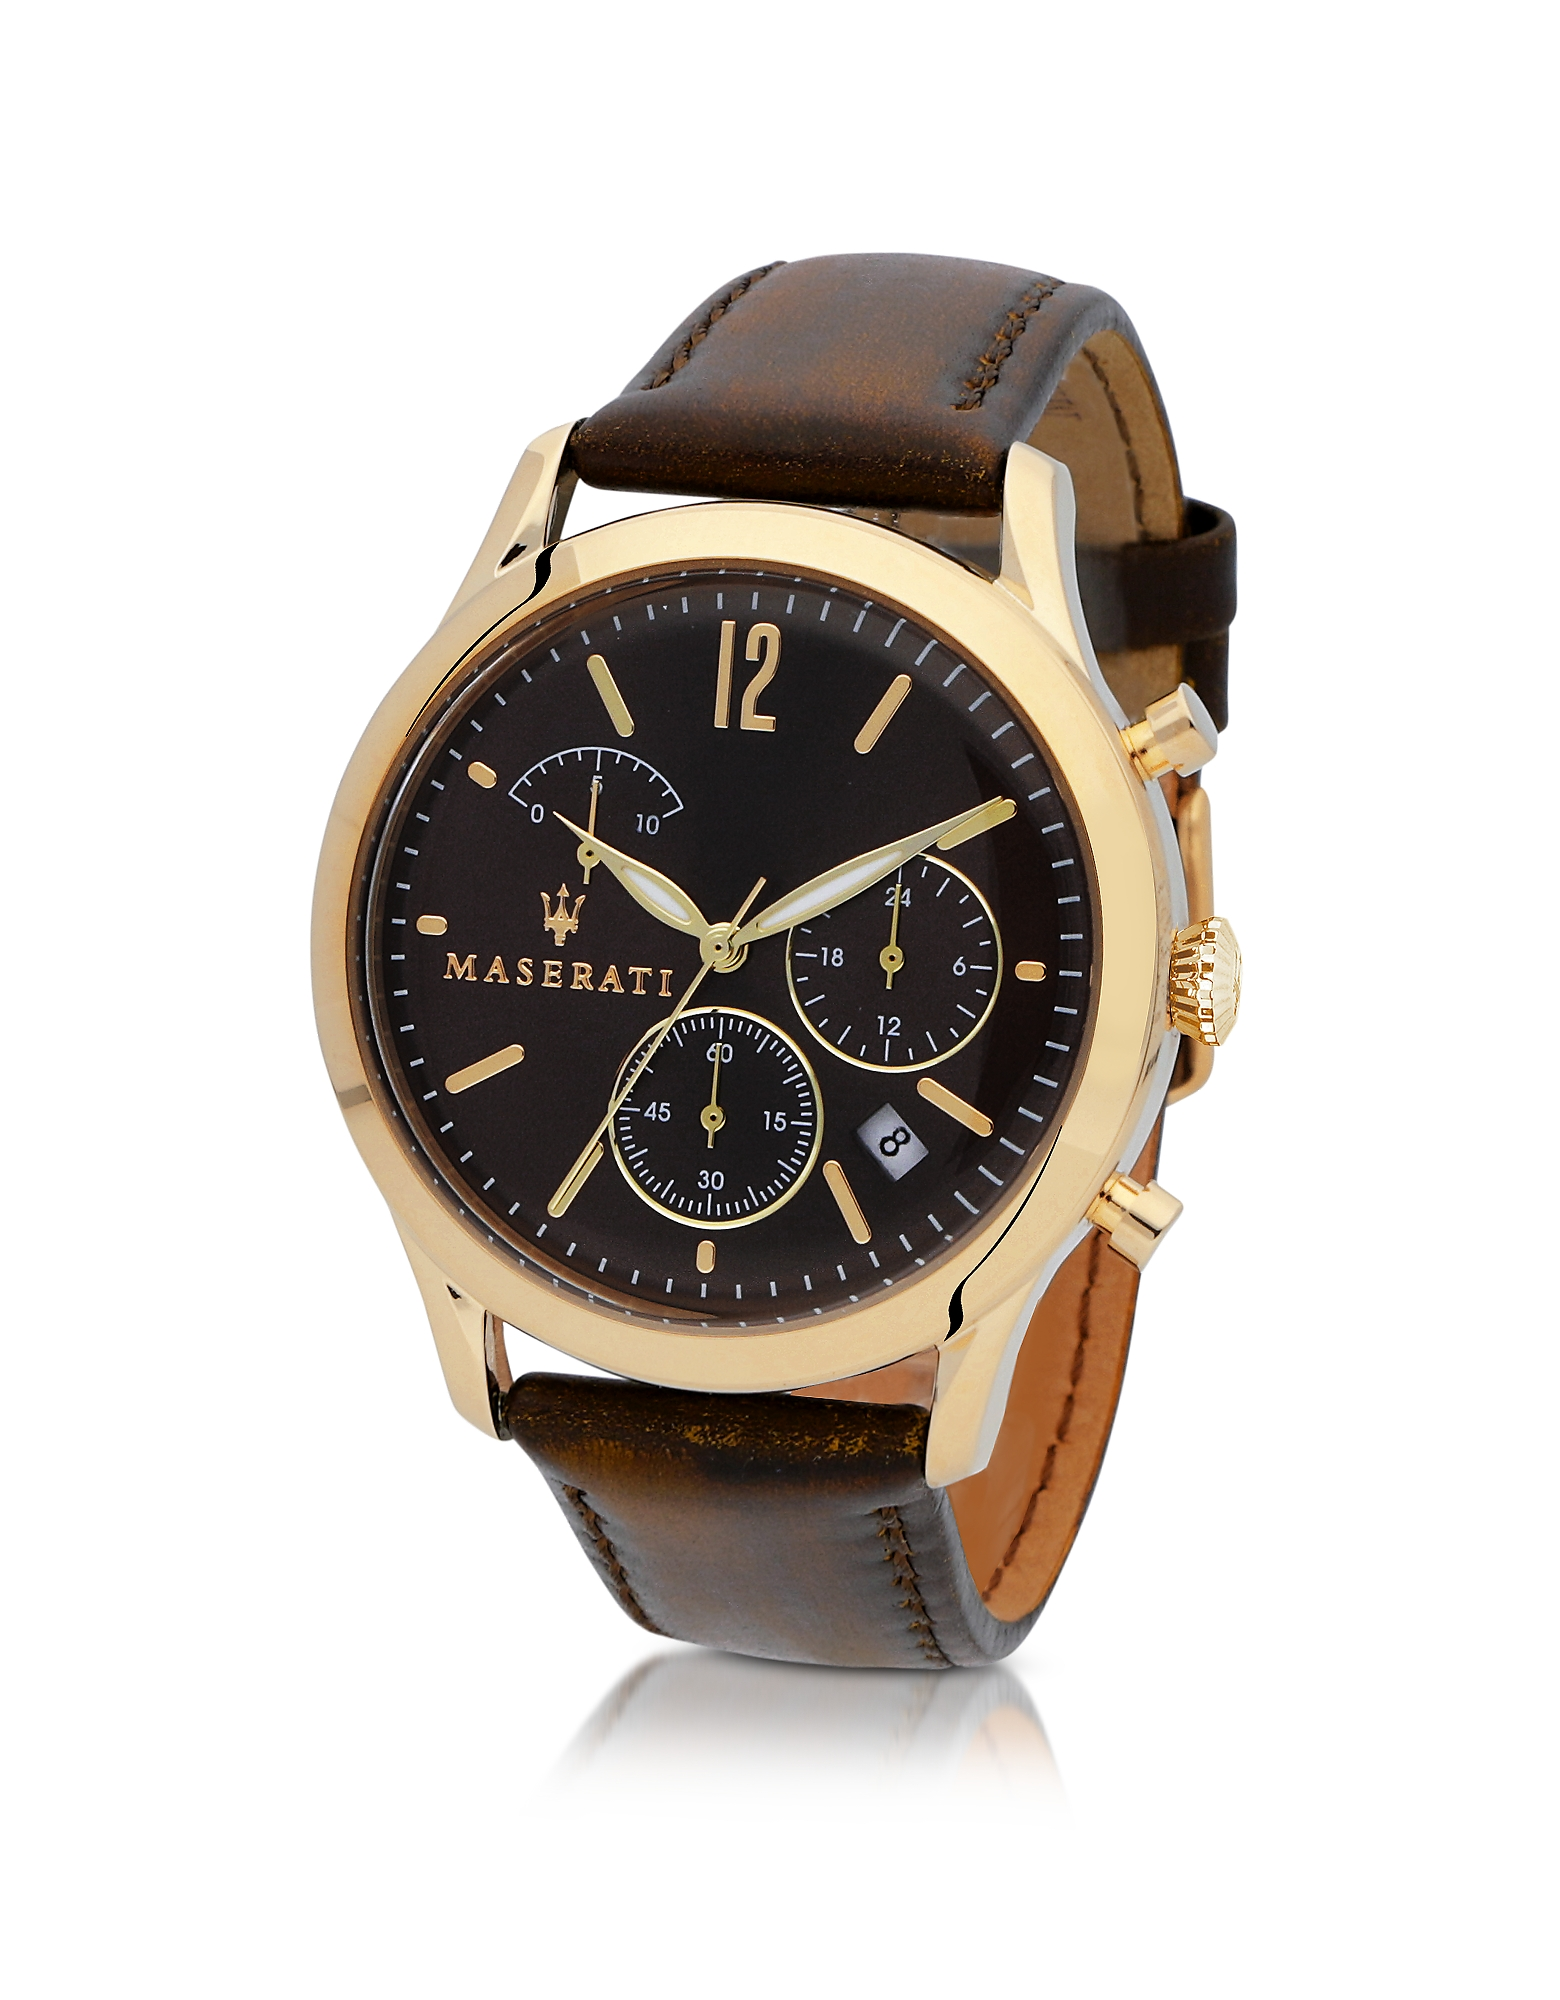 Maserati Men's Watches, Tradizione Gold Tone Case and Brown Leather Strap Men's Chrono Watch